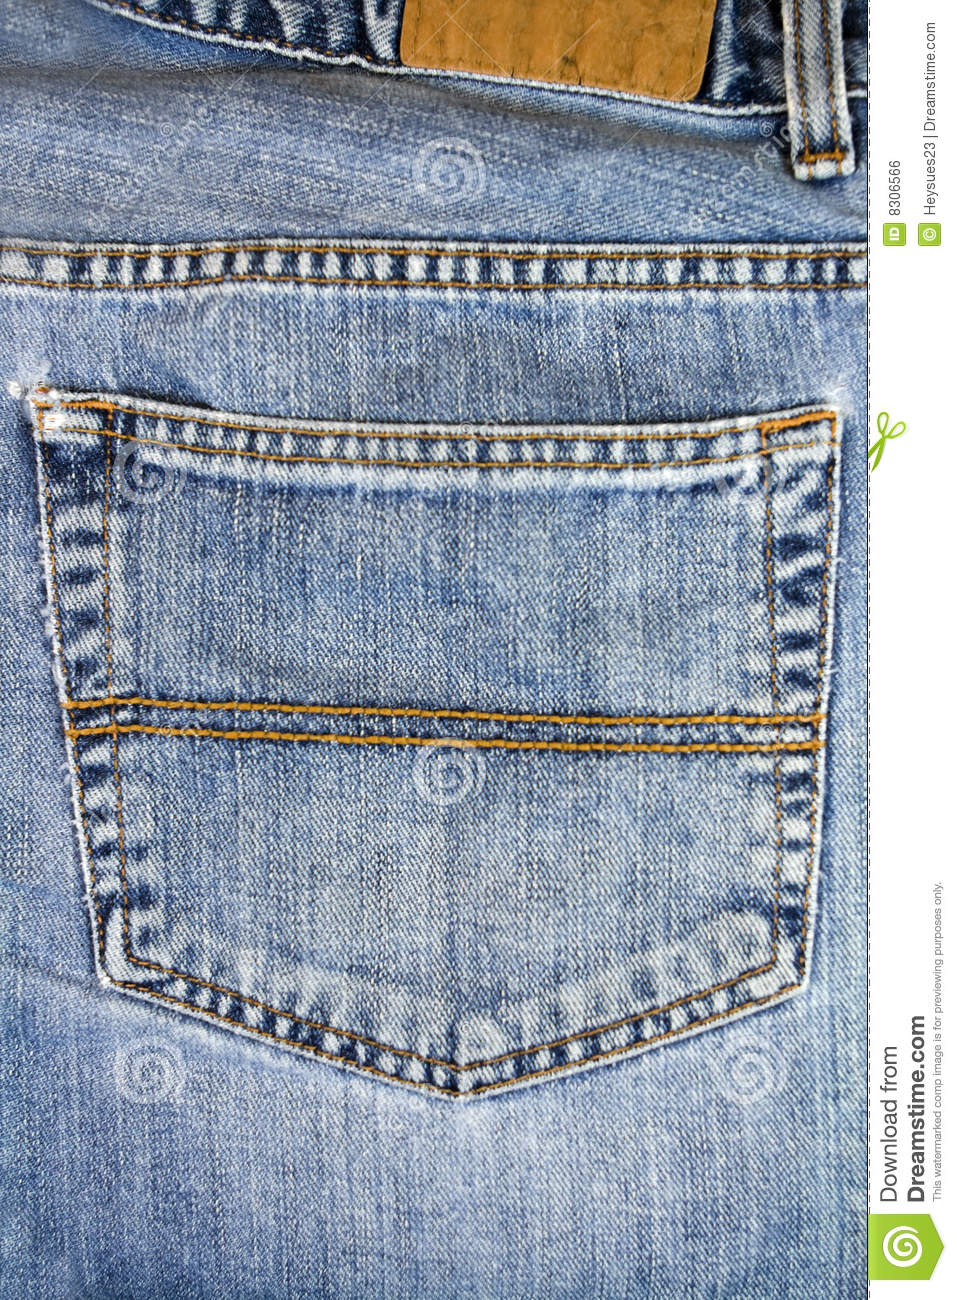 Jean pocket background stock photo. Image of color clothes - 8306566